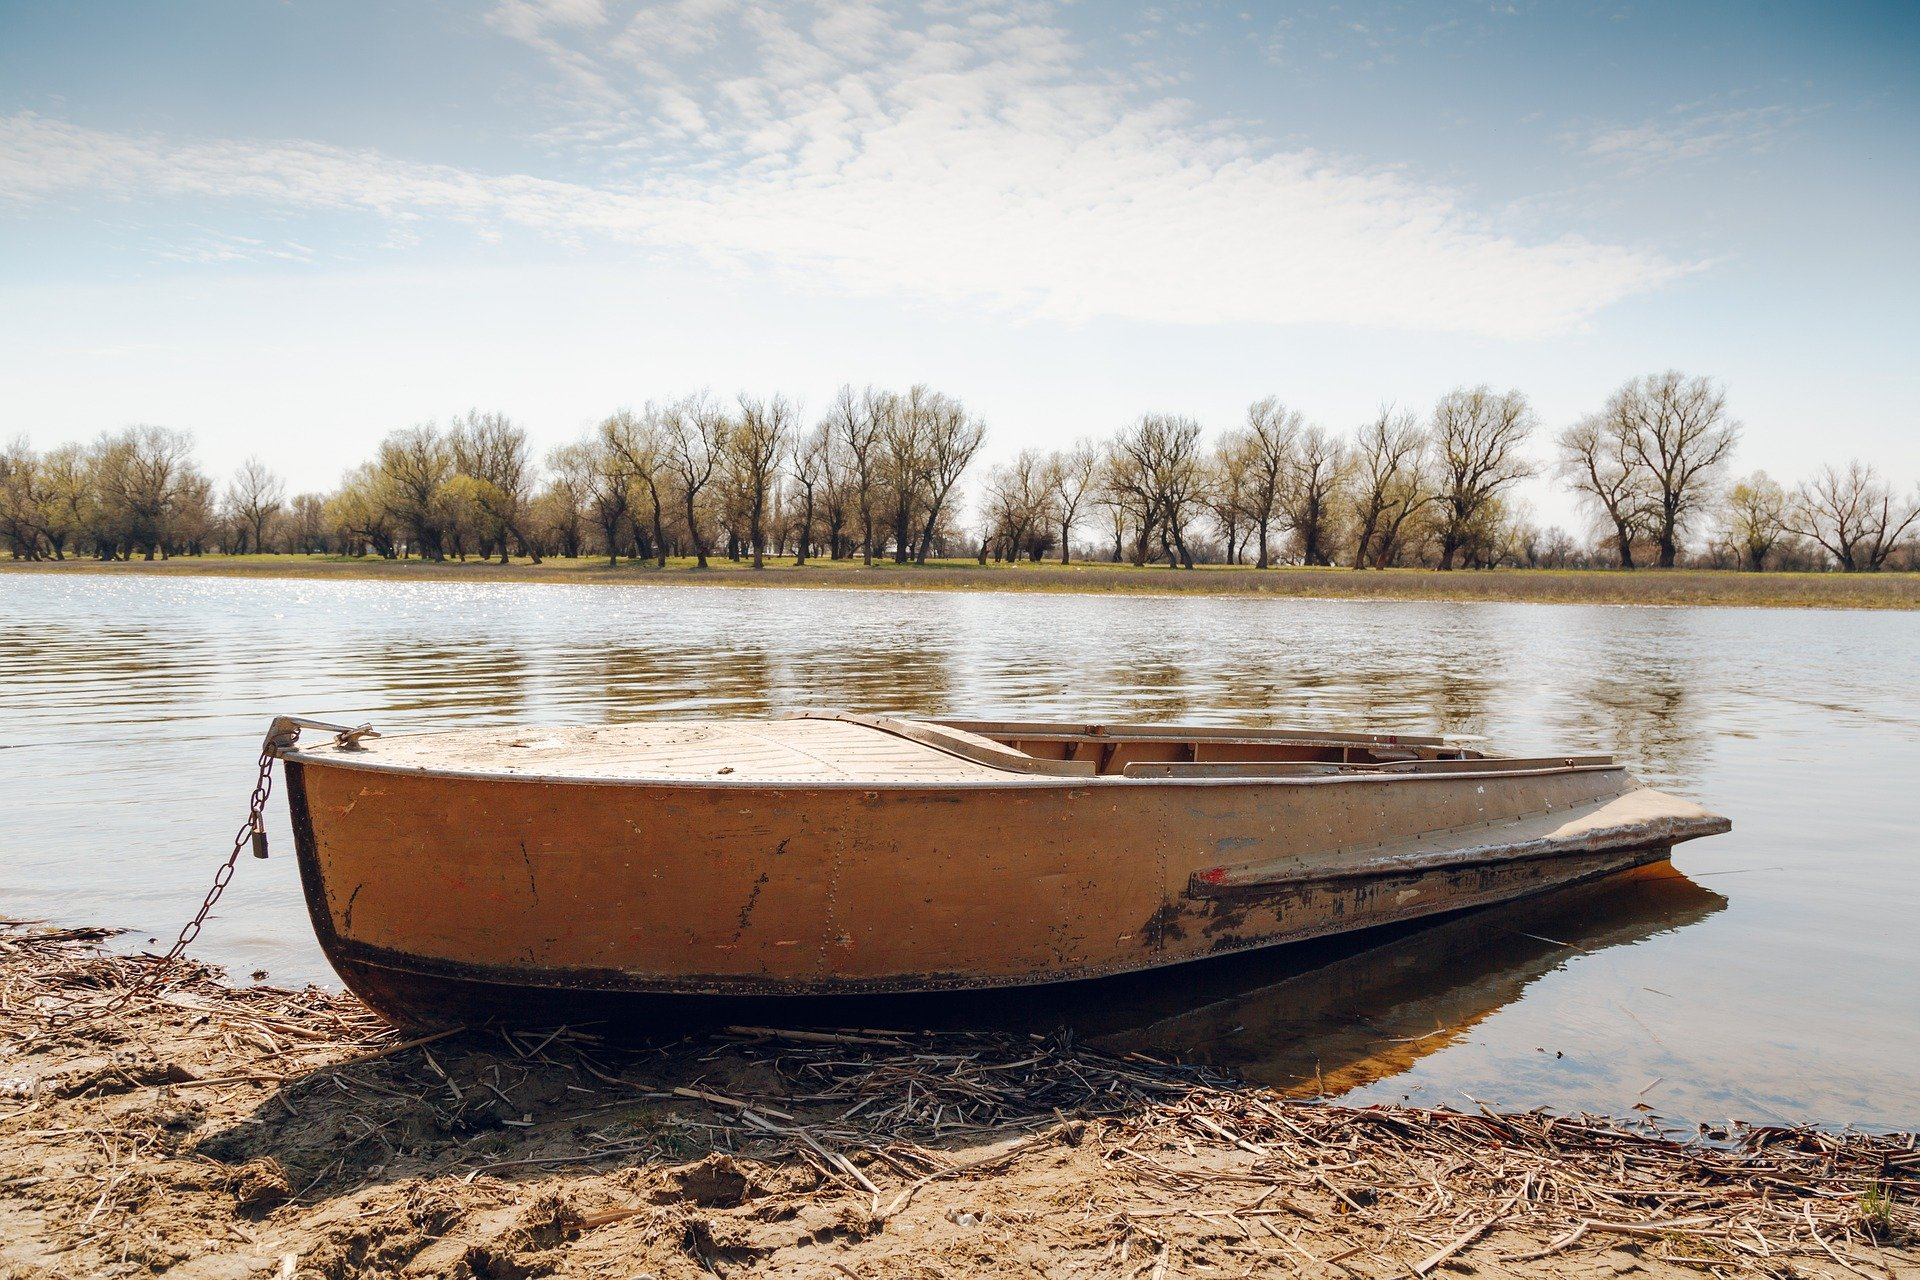 A boat in the river   Photo: Pixabay